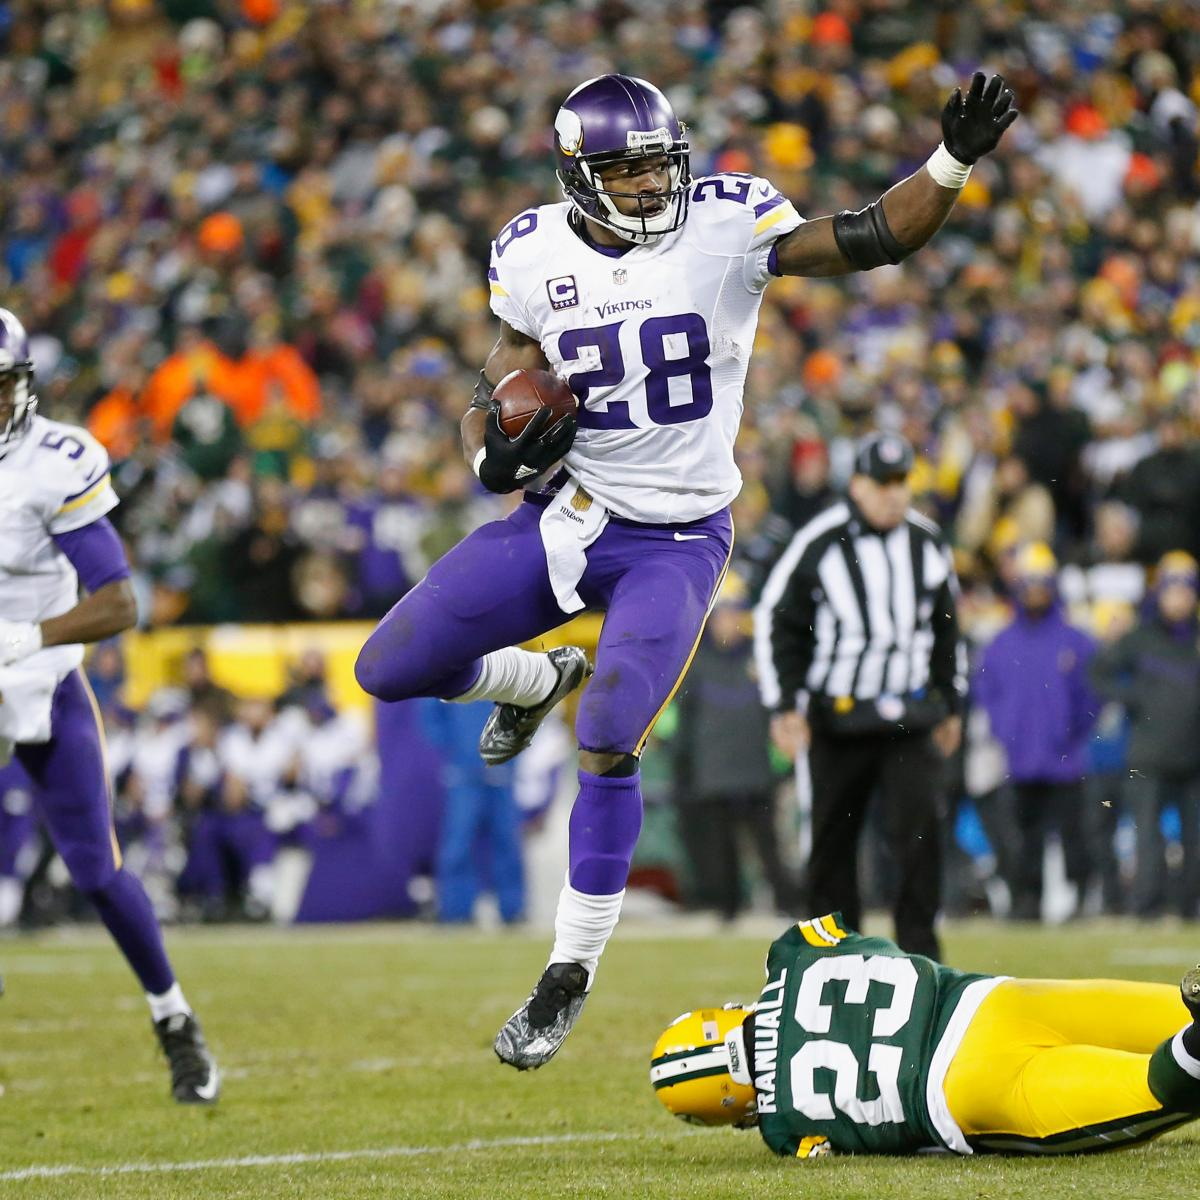 Minnesota Vikings Vs Green Bay Packers Live Score Highlights And Analysis Bleacher Report Latest News Videos And Highlights